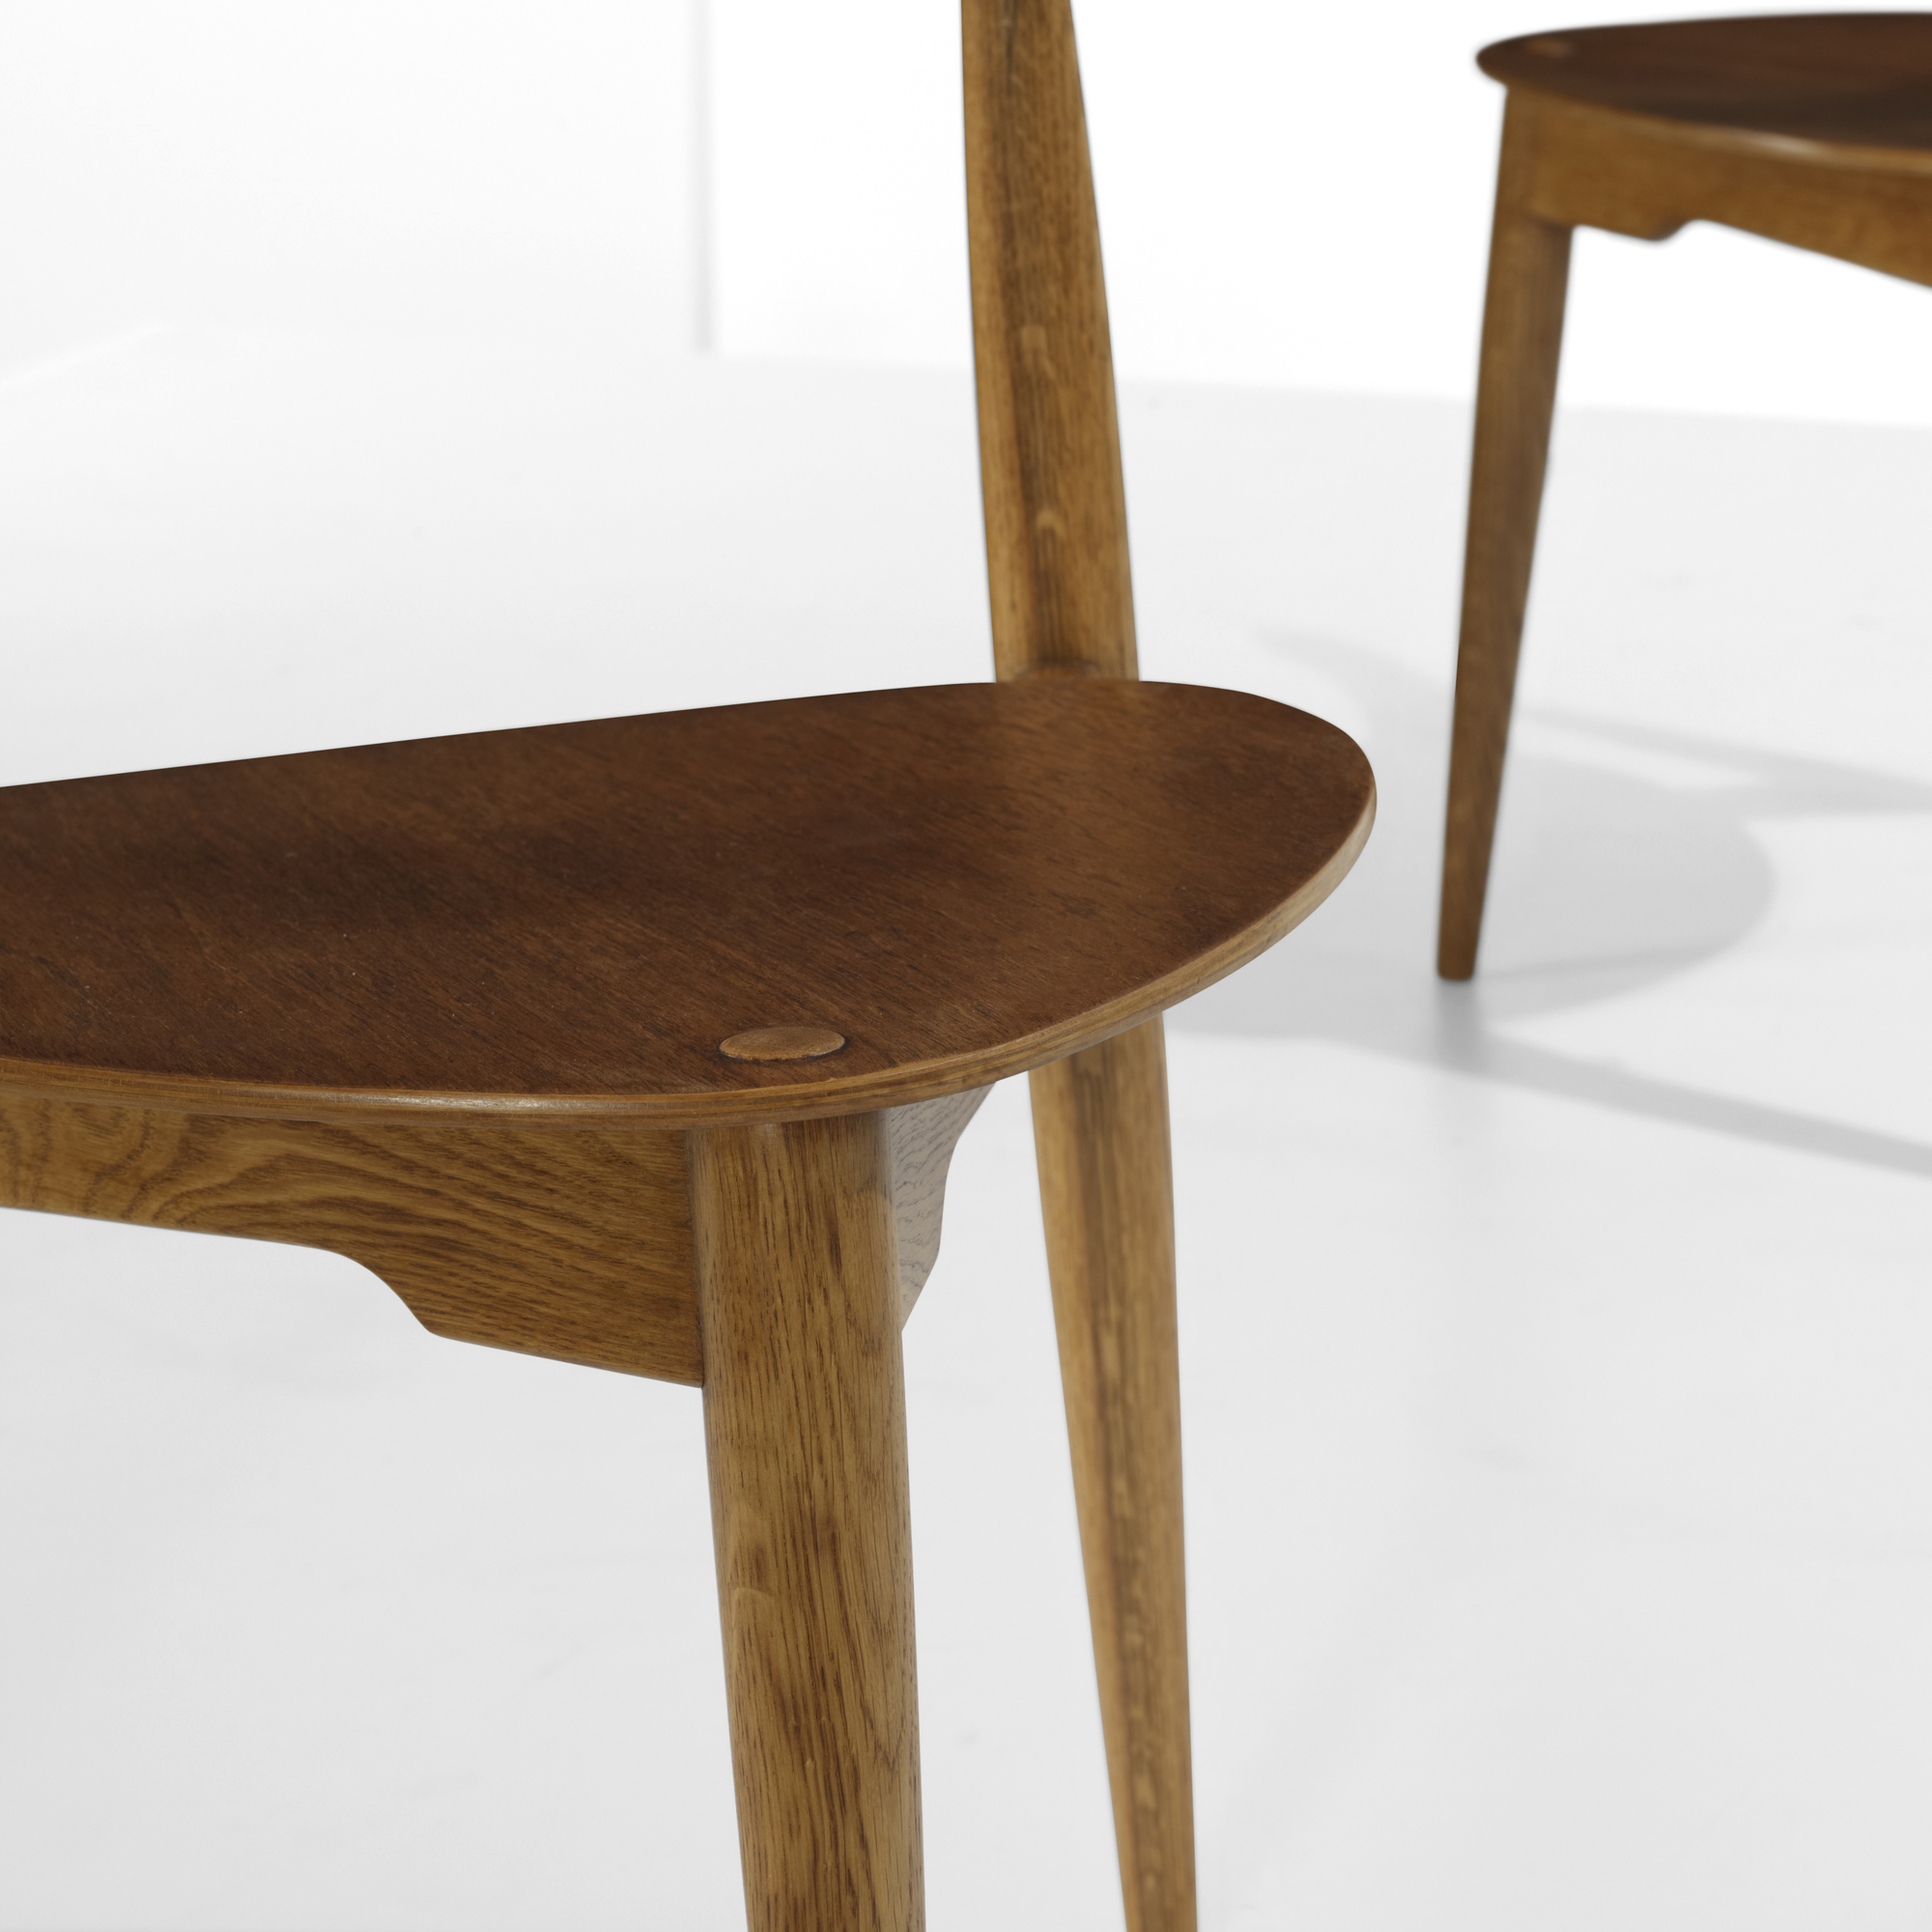 ... 183: Hans J. Wegner / Heart Dining Chairs, Set Of Six (7